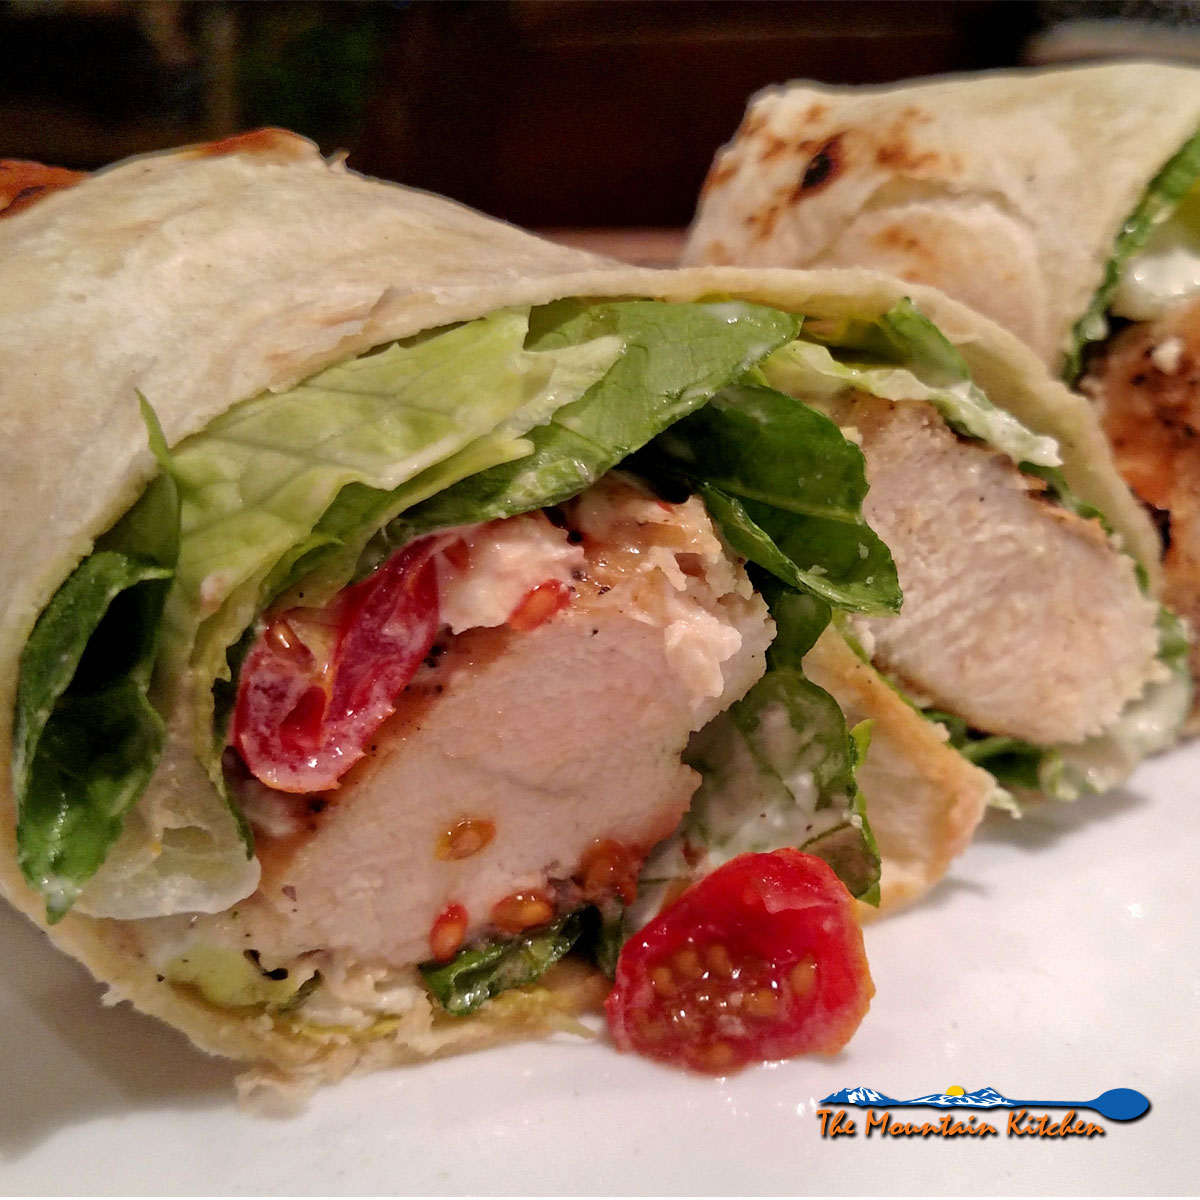 Chicken Caesar Wraps made of juicy chicken, wrapped in a tortilla with lettuce, tomatoes, feta, and parmesan cheeses, and crispy pepperoni.